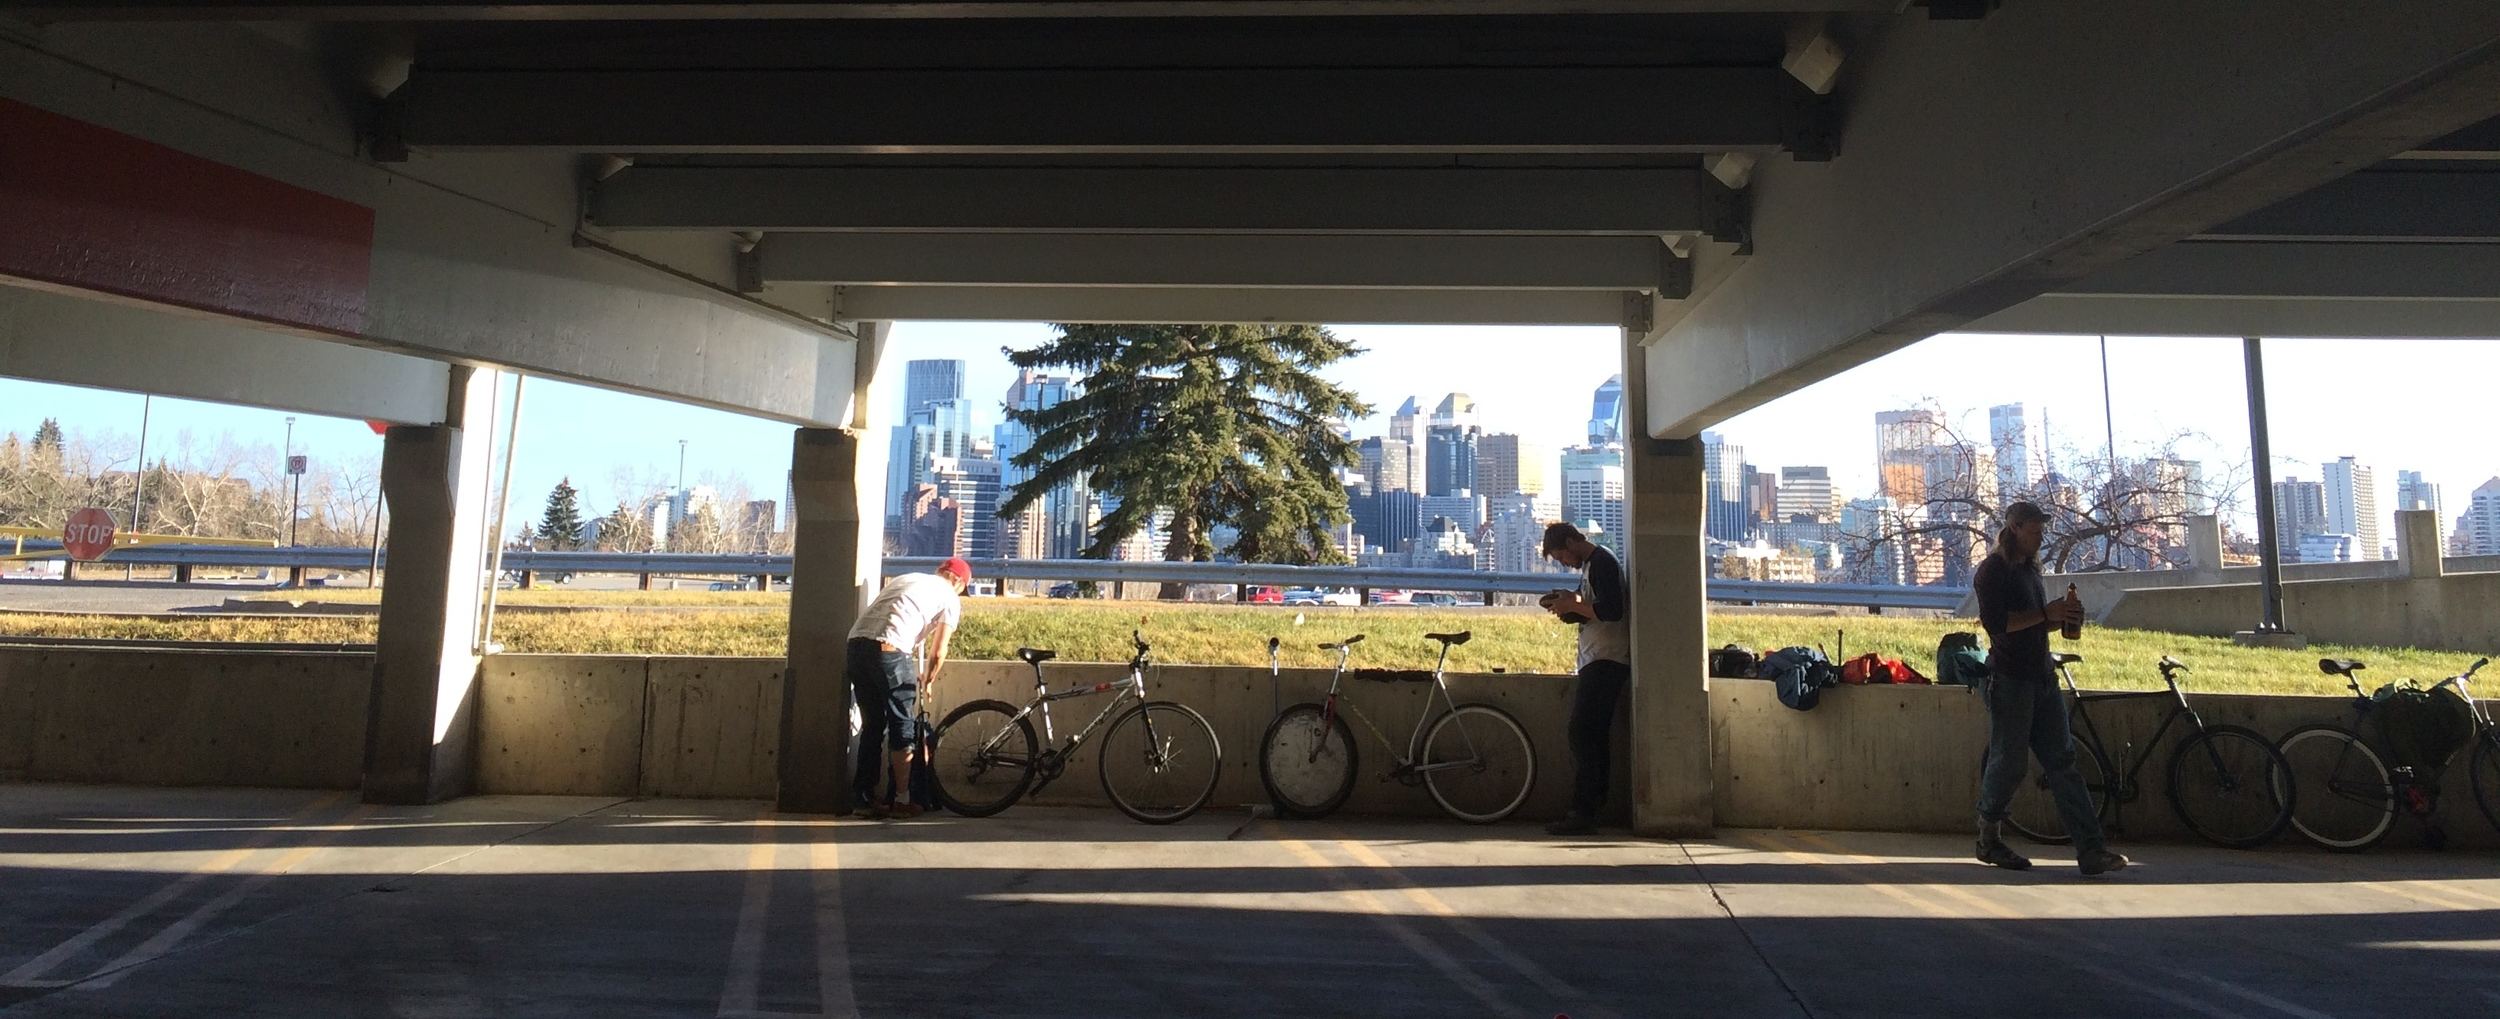 Photo:   Getting ready to play some bike polo at Alberta College of Art and Design while soaking in the views of downtown Calgary.